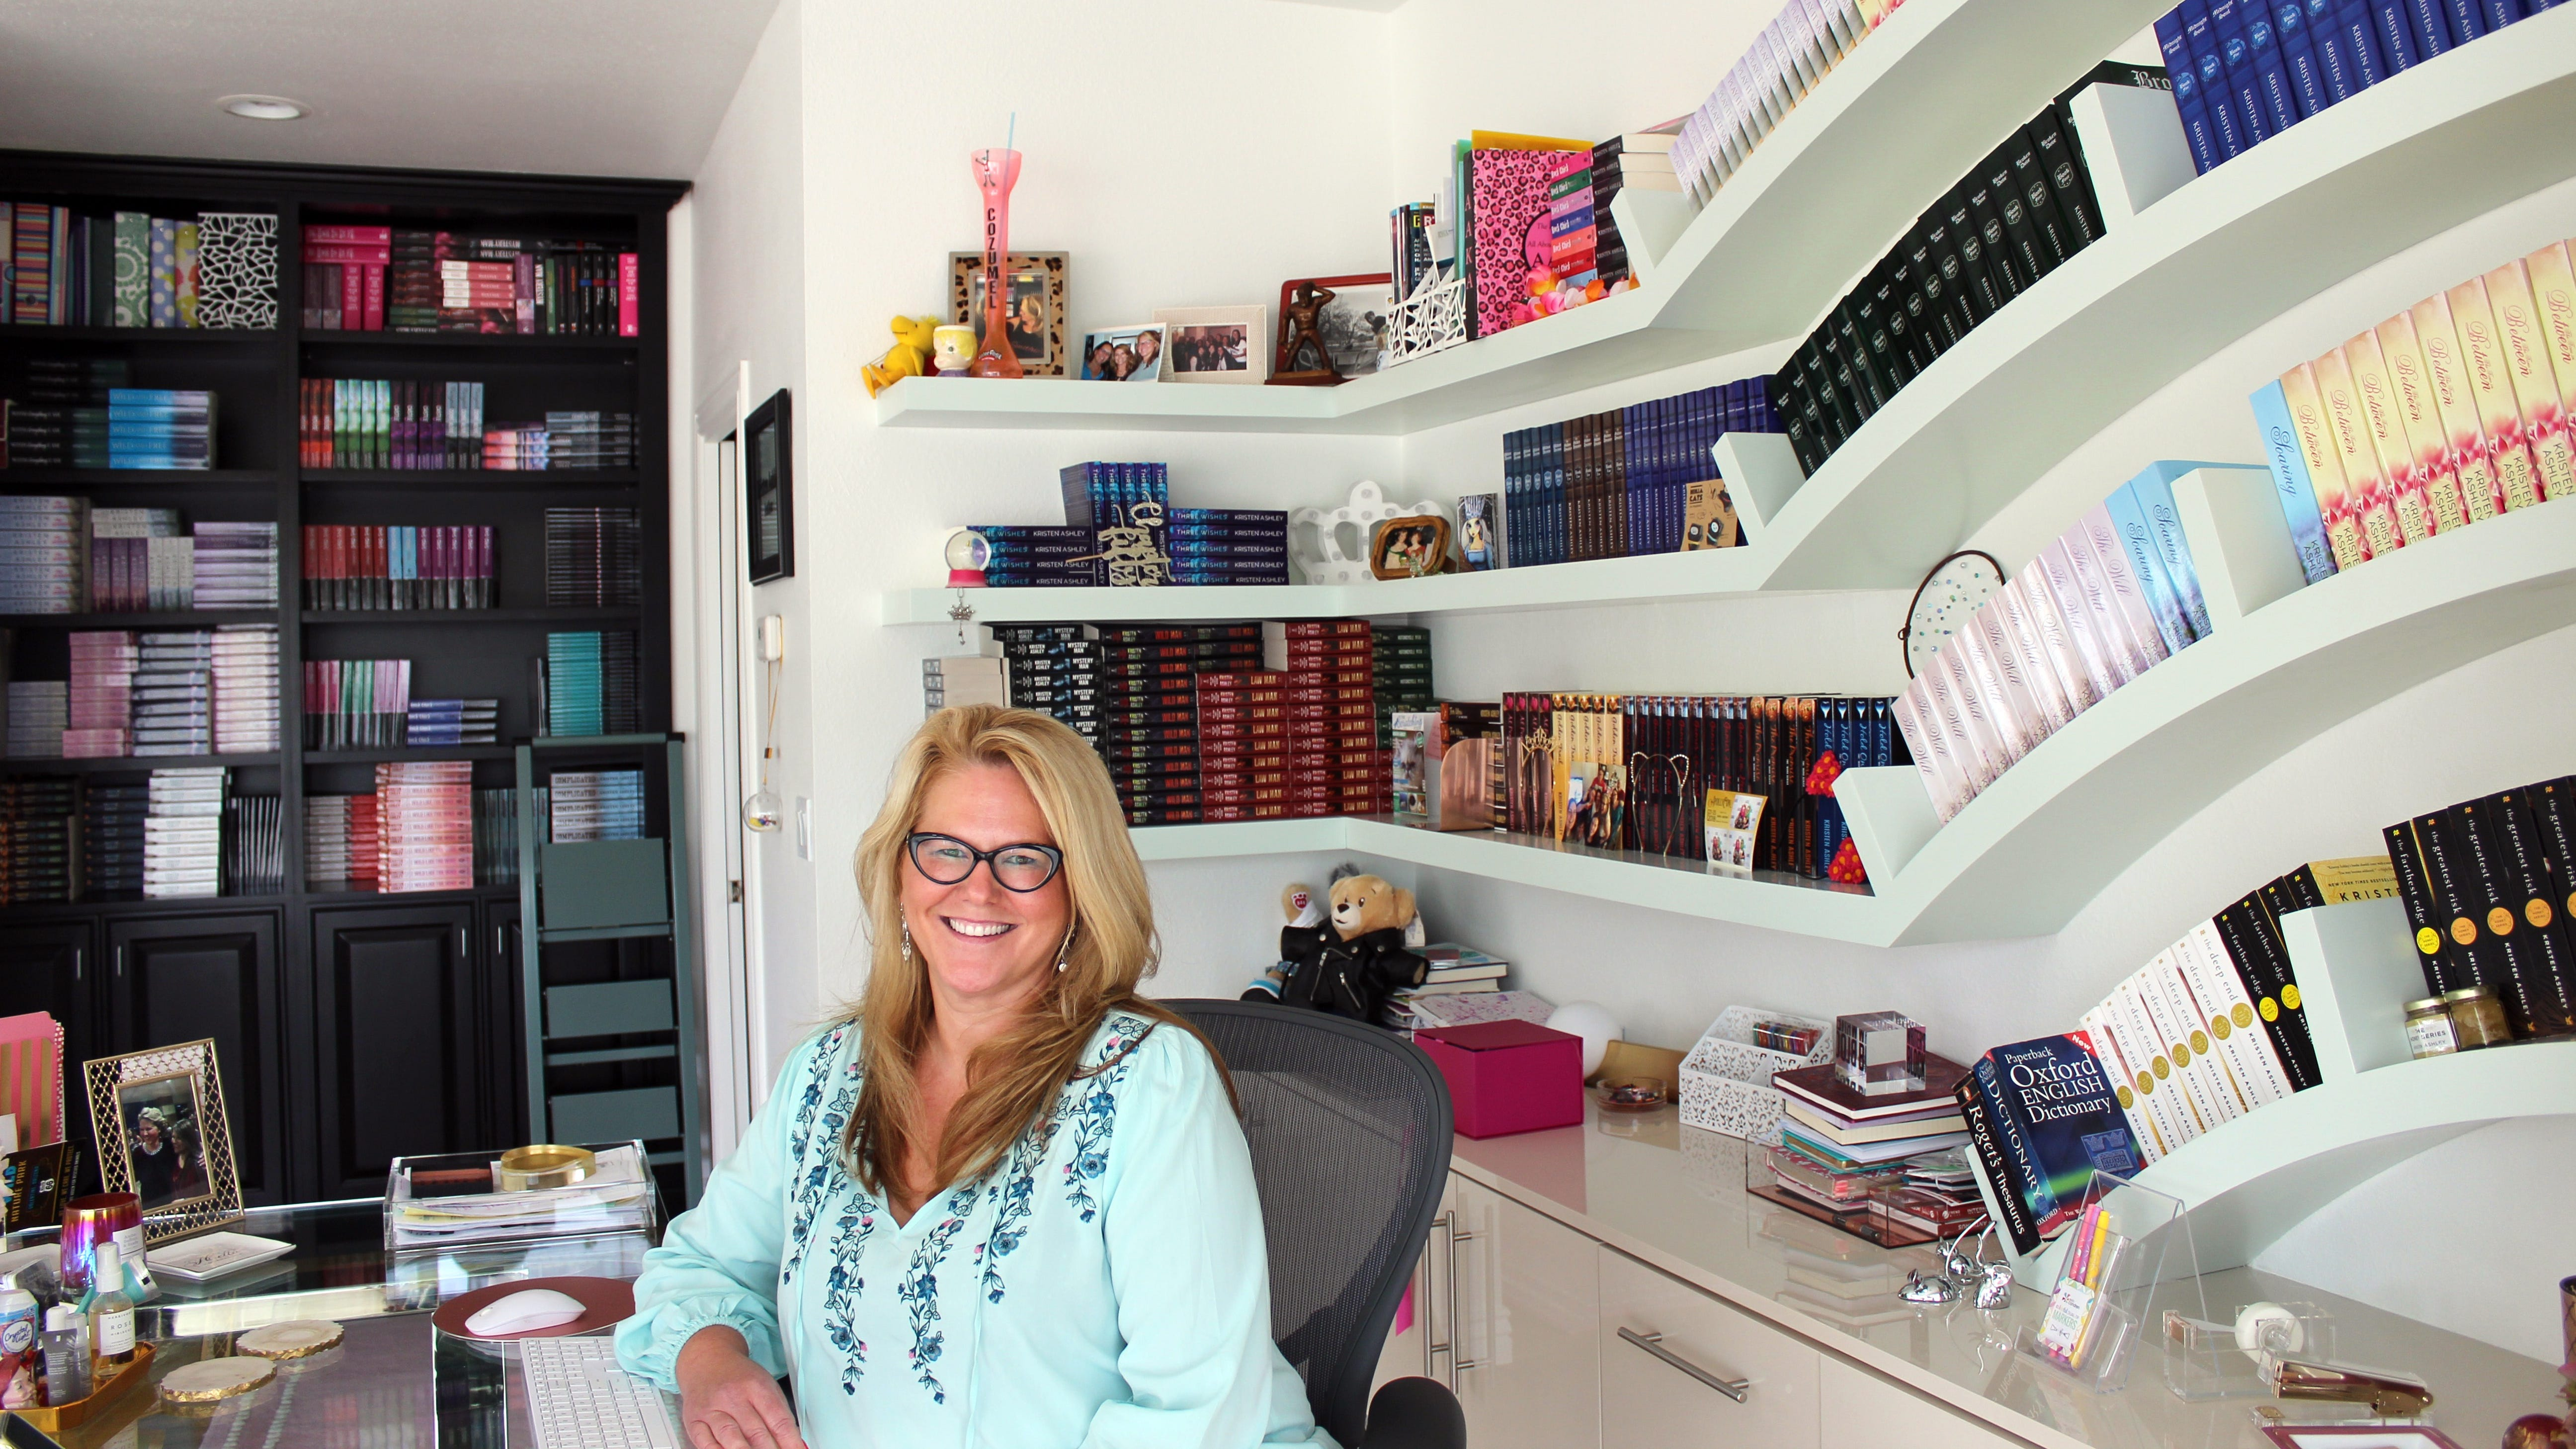 Kristen Ashley started reading romance novels when she was 13 years old. Now, she's published over 60 of her own.